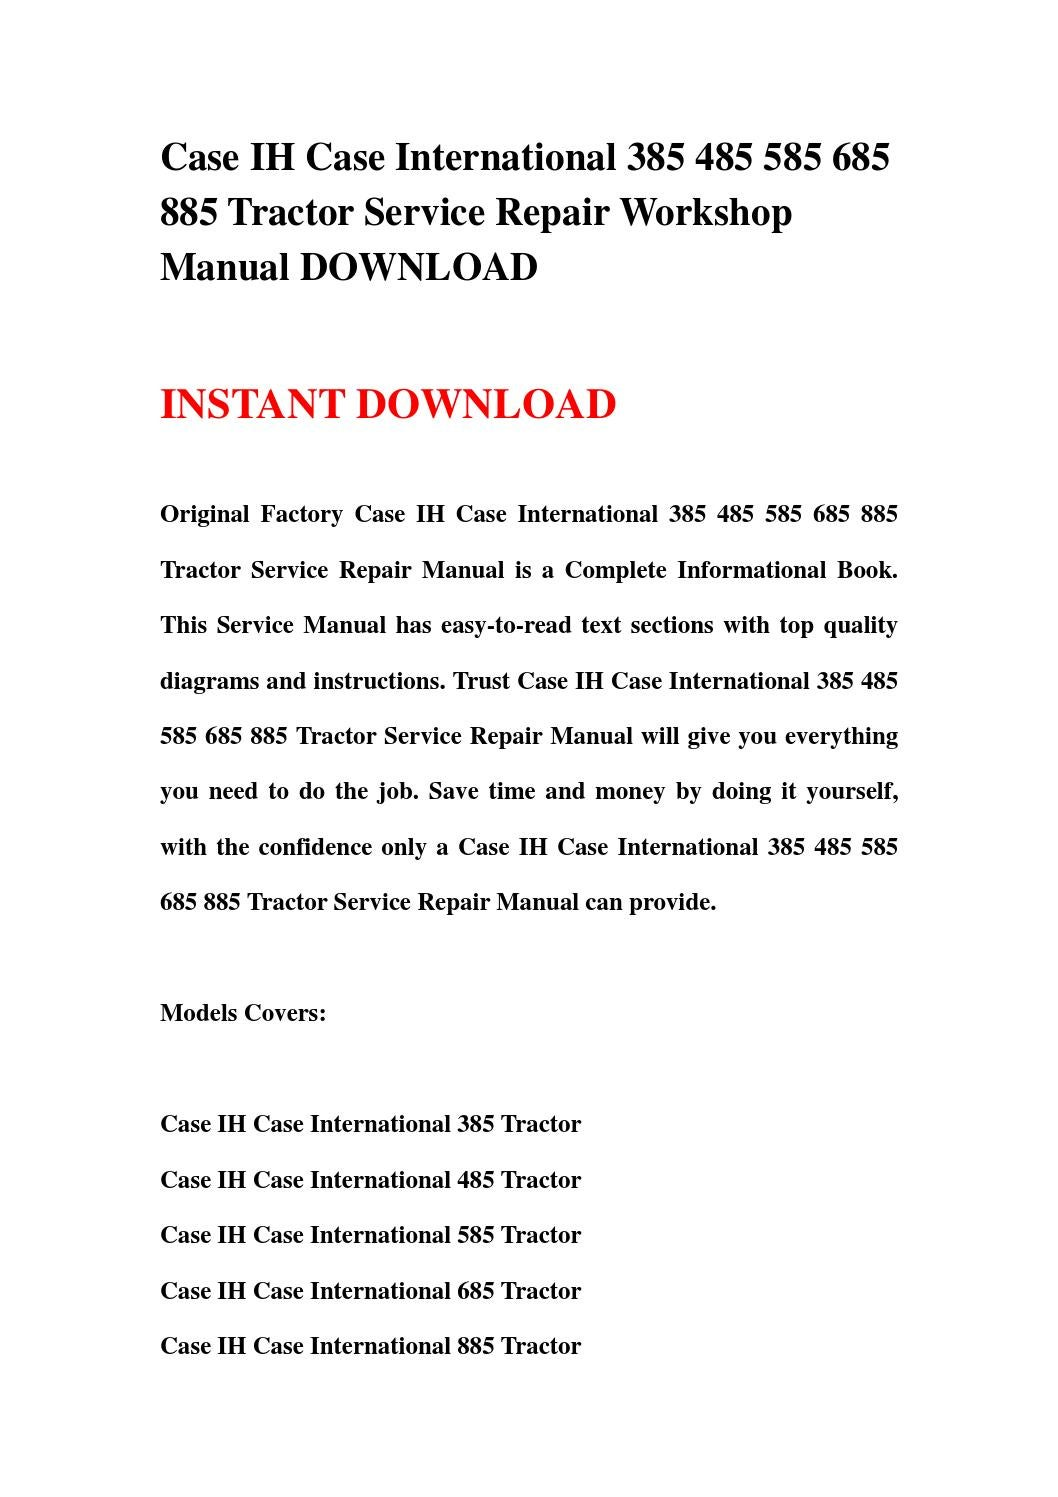 Case ih case international 385 485 585 685 885 tractor service repair  workshop manual download by skefjnsnef mkfjef - issuu